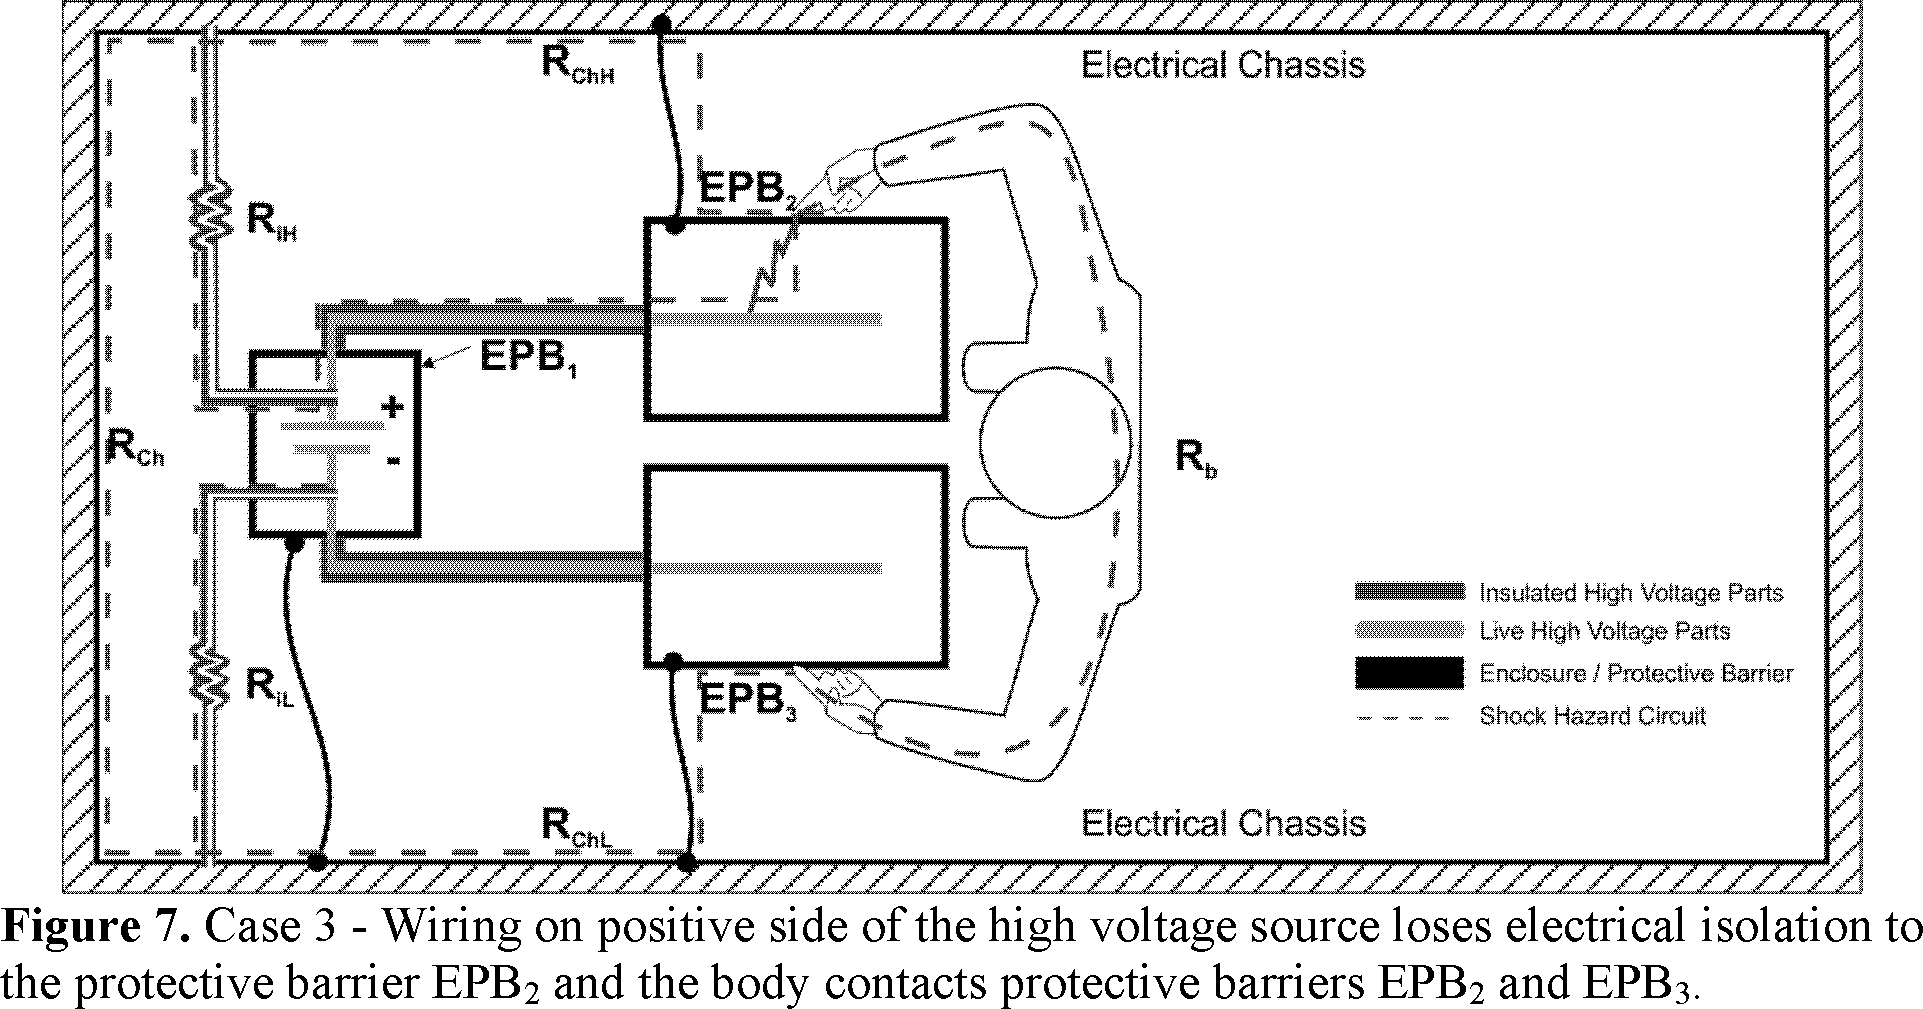 case 4 indirect contact of high voltage source with possibility of electric shock the electric wiring of the positive and negative sides of the high  [ 1923 x 1009 Pixel ]